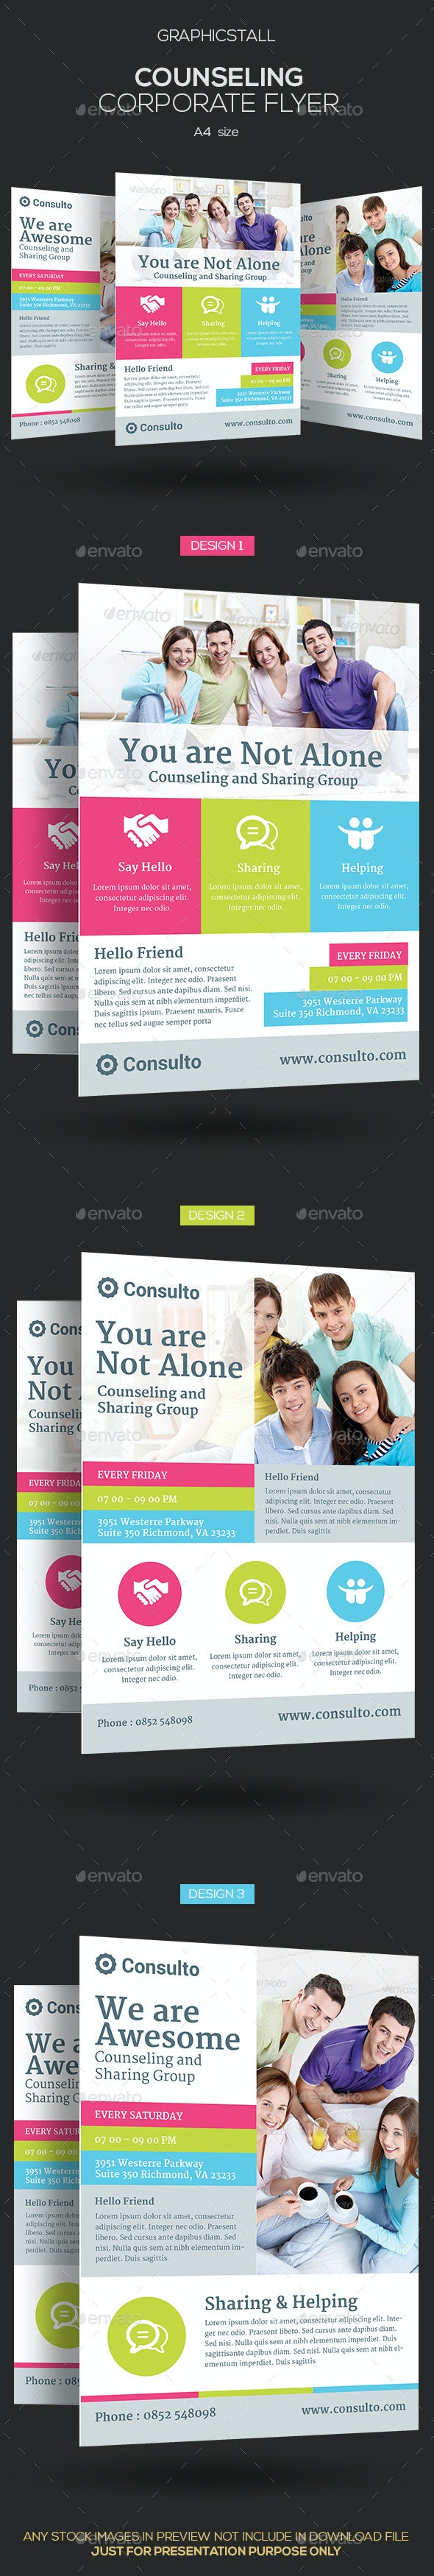 Counseling Corporate Flyer - Corporate Flyers